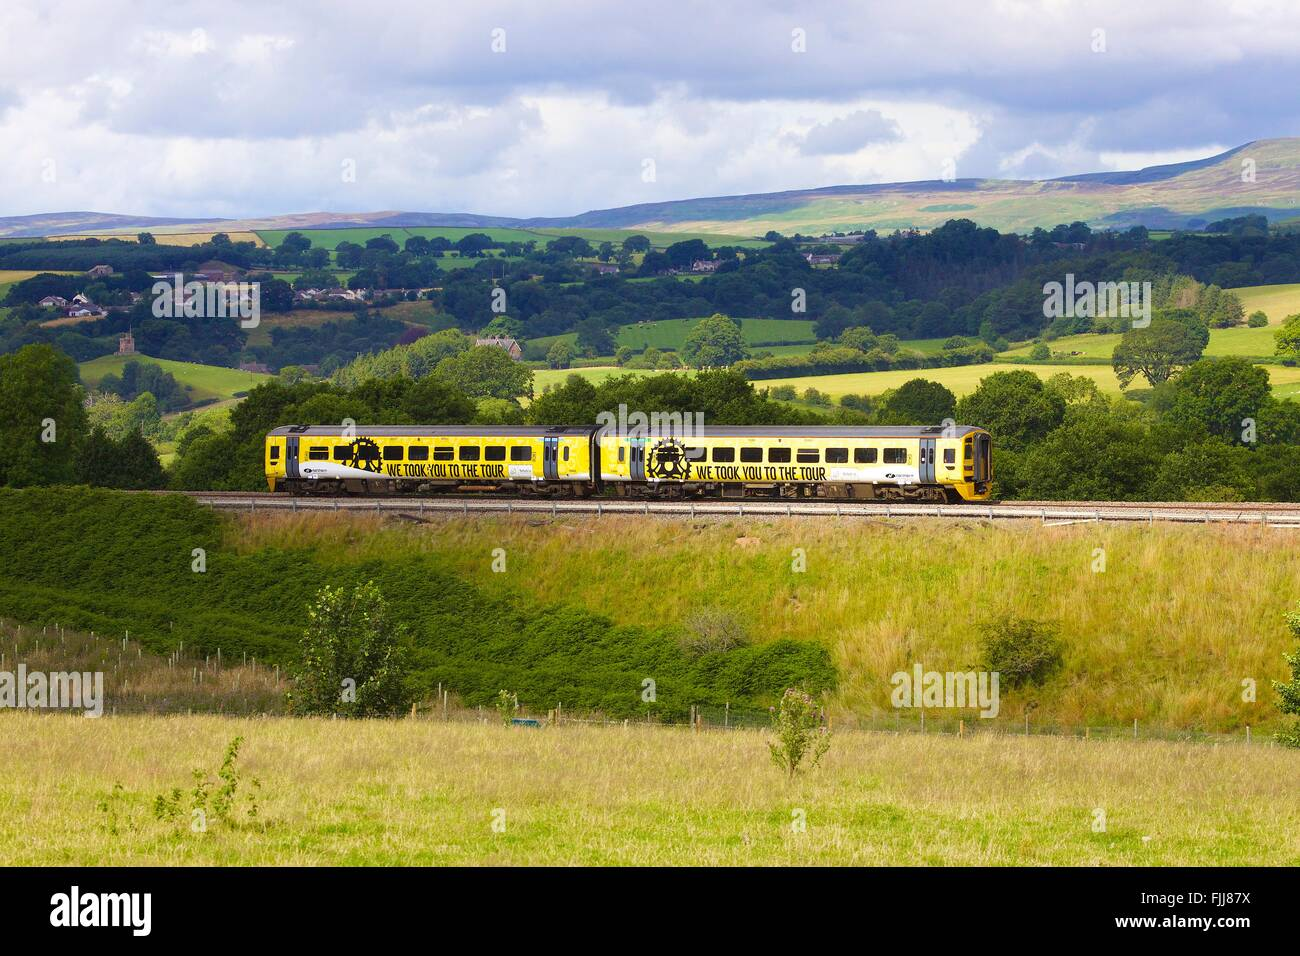 DMU Class 158 painted yellow by Northern Rail in honour of Tour de France in the Yorkshire Dales. Lazonby, Eden - Stock Image